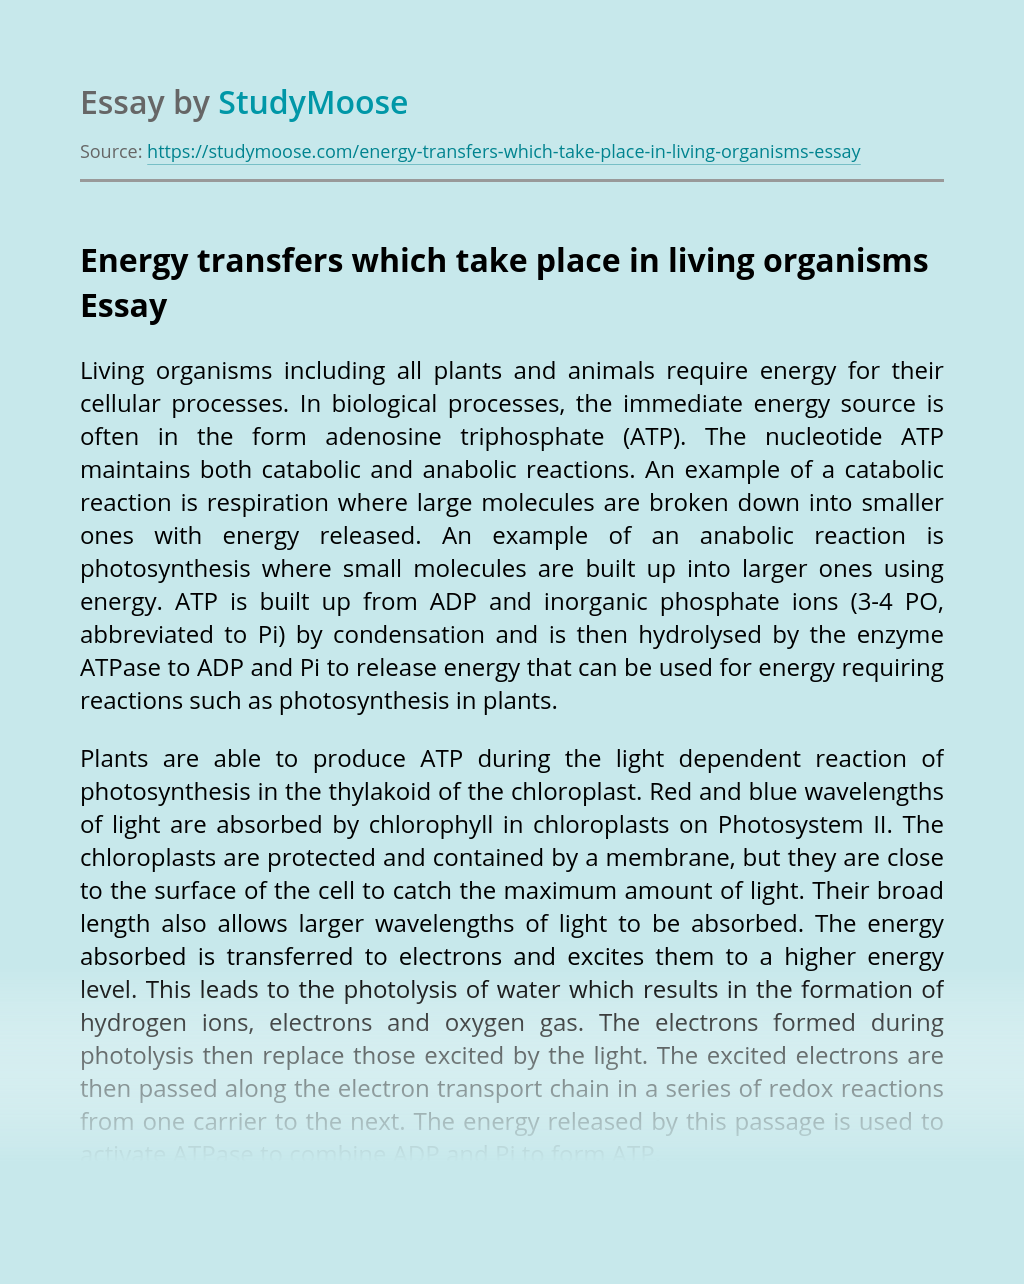 Energy transfers which take place in living organisms